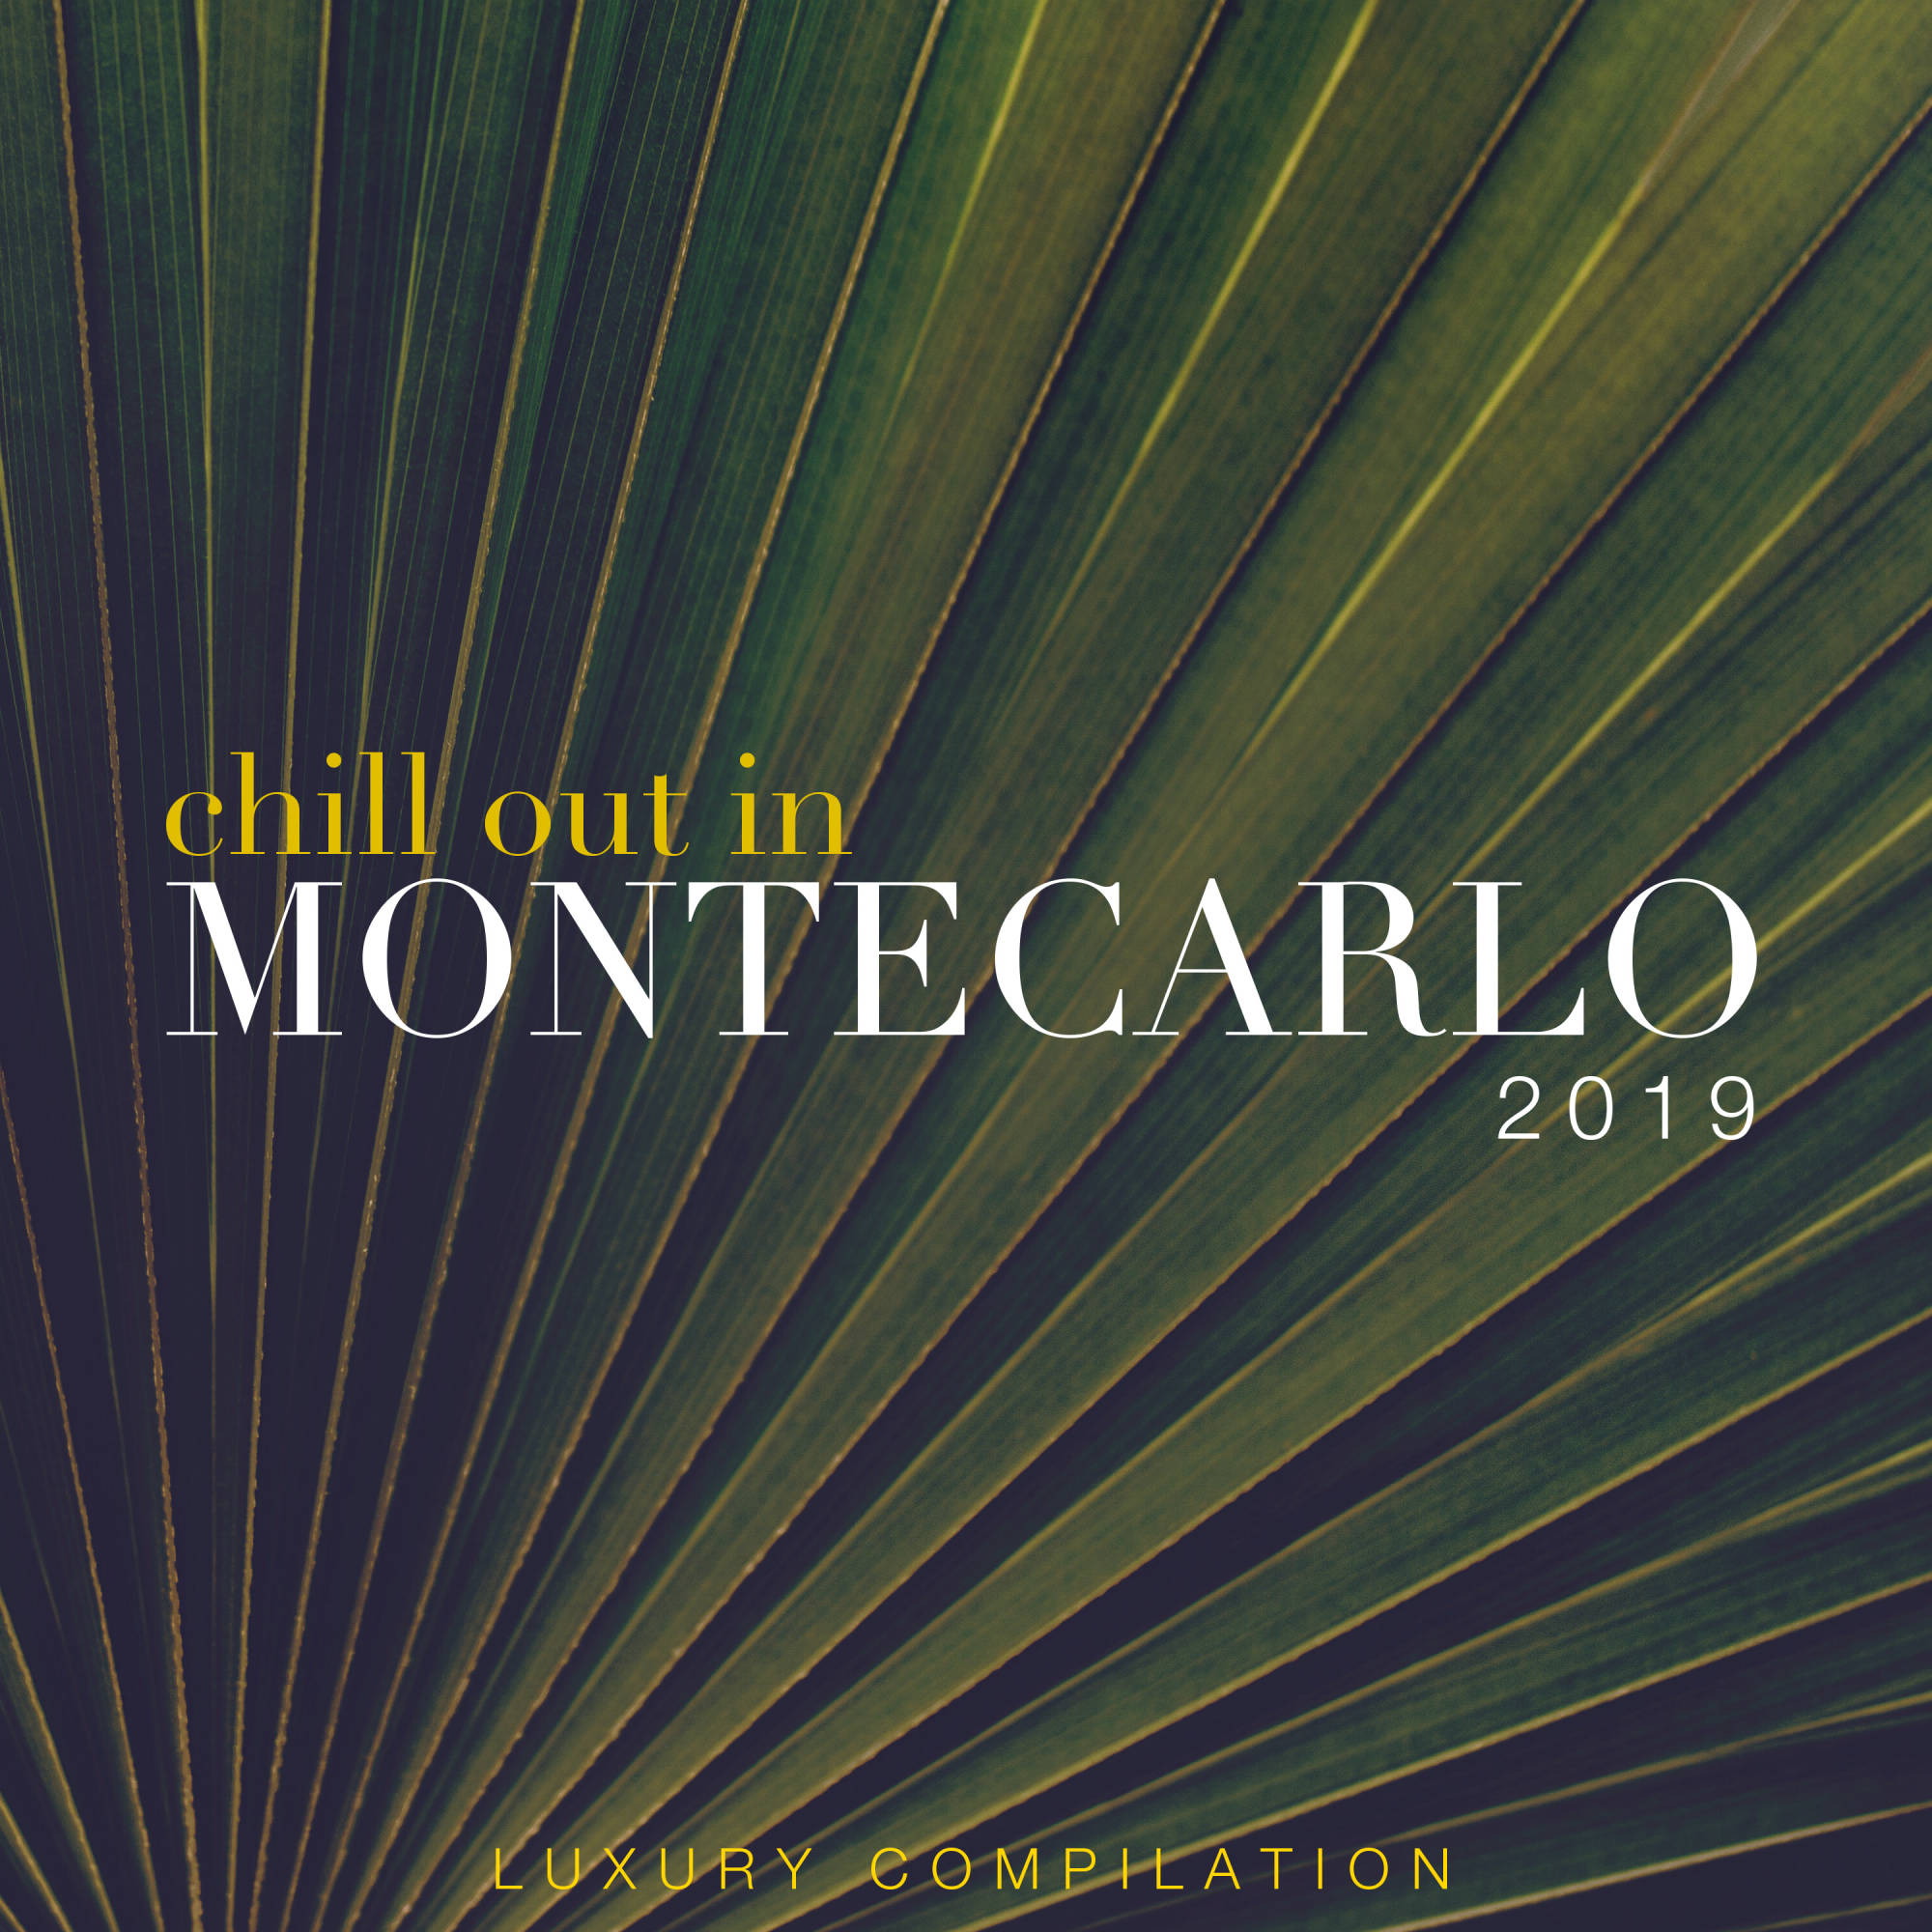 Chill out in Montecarlo 2019 (Luxury Compilation)